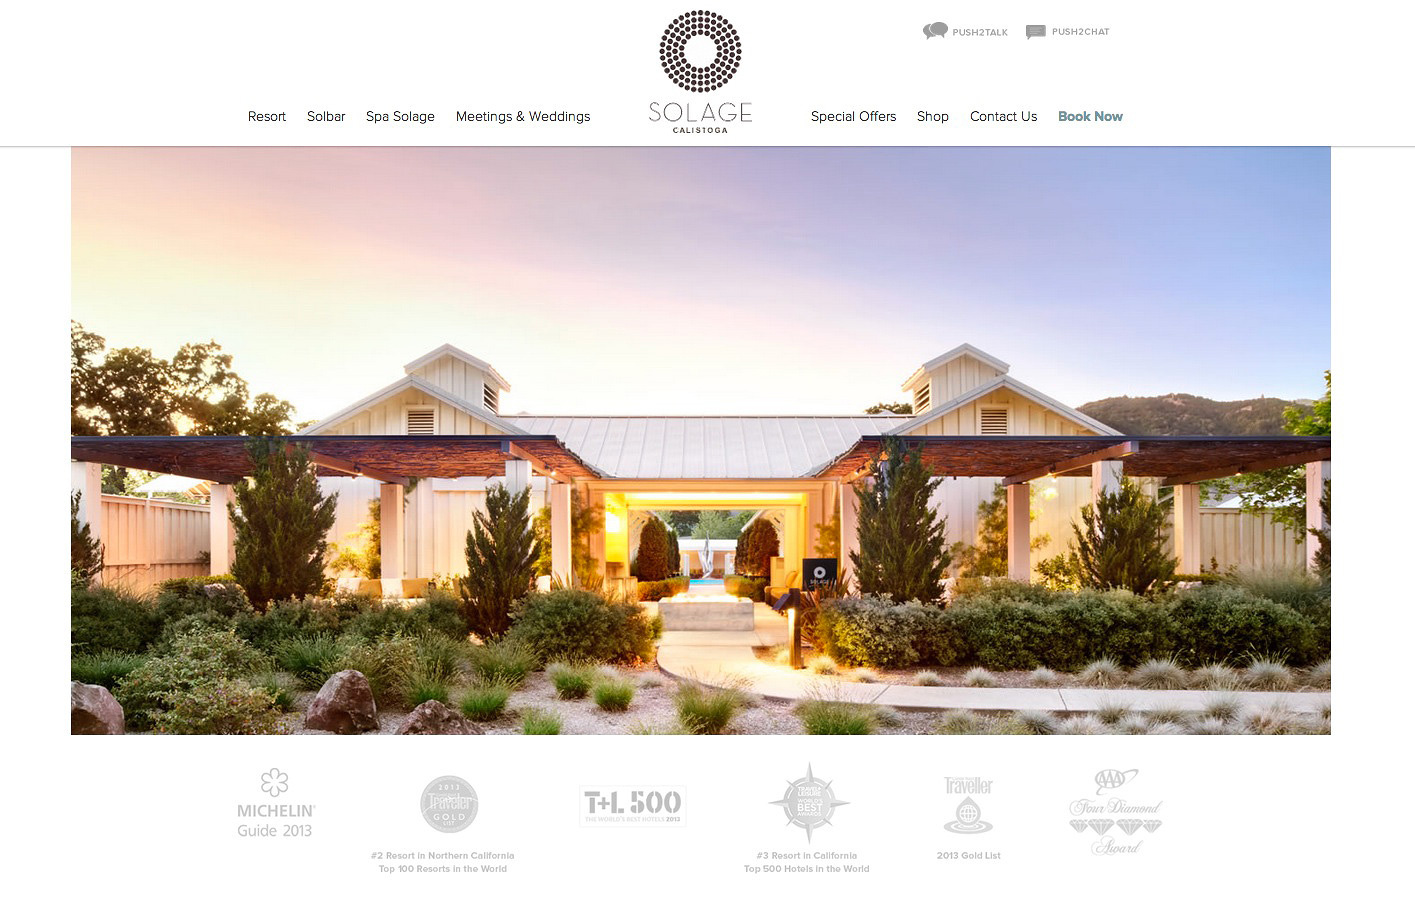 Solage Resort Website Napa  | Trinette+Chris Photographers